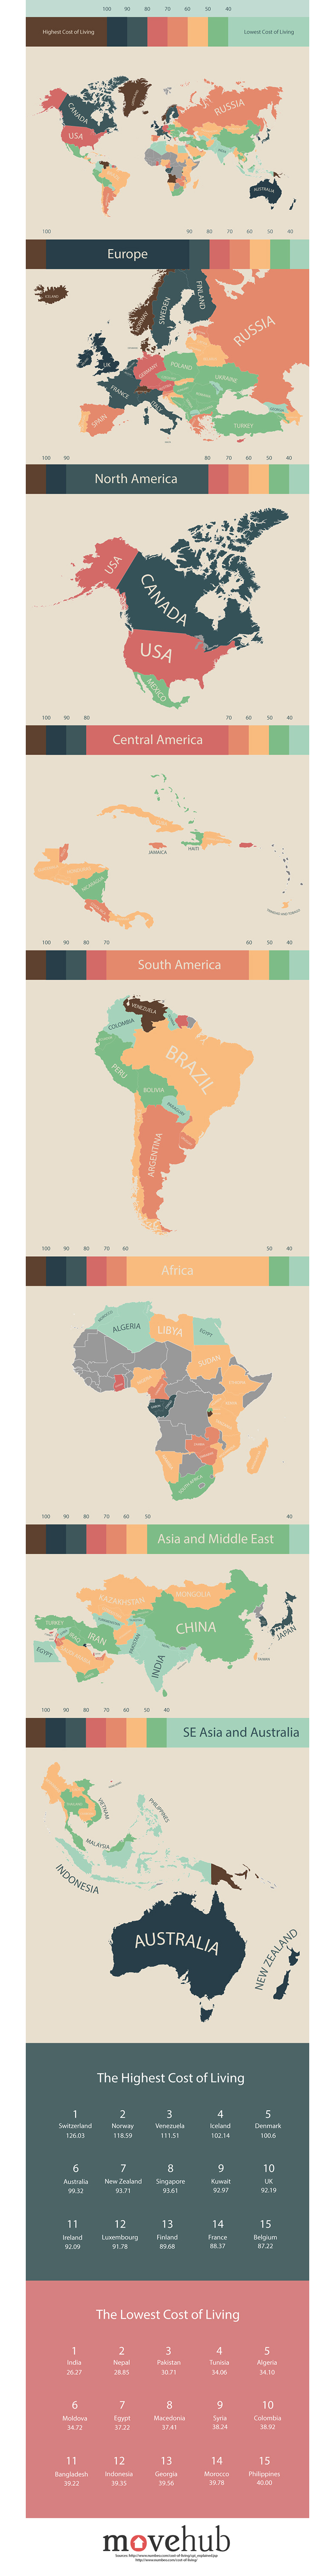 movehubs-infographics-show-the-cost-of-living-of-different-countries-from-all-over-the-world-12